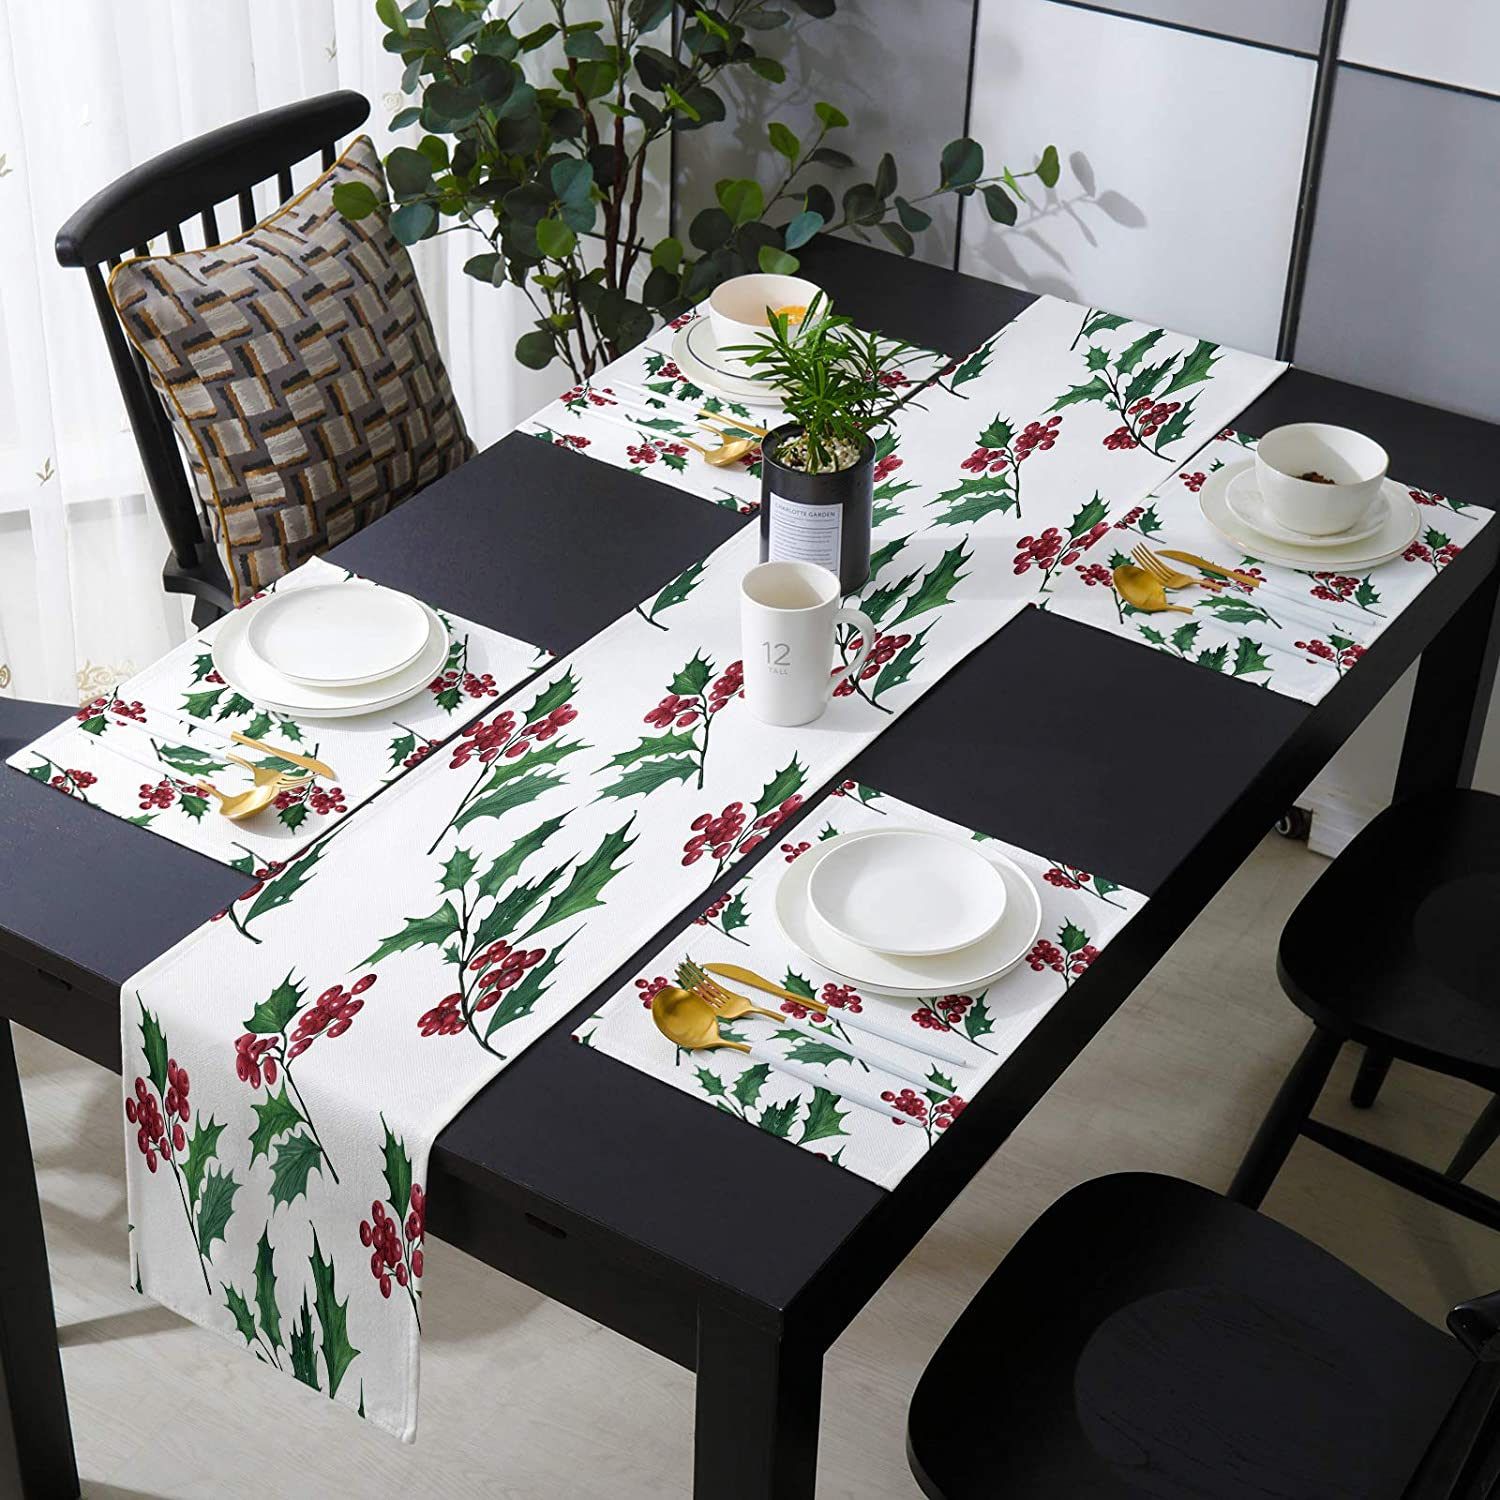 Fangship 13'' x 90'' Table Runner Ranking TOP17 Placemats with Set 6 of Christ Ranking TOP6